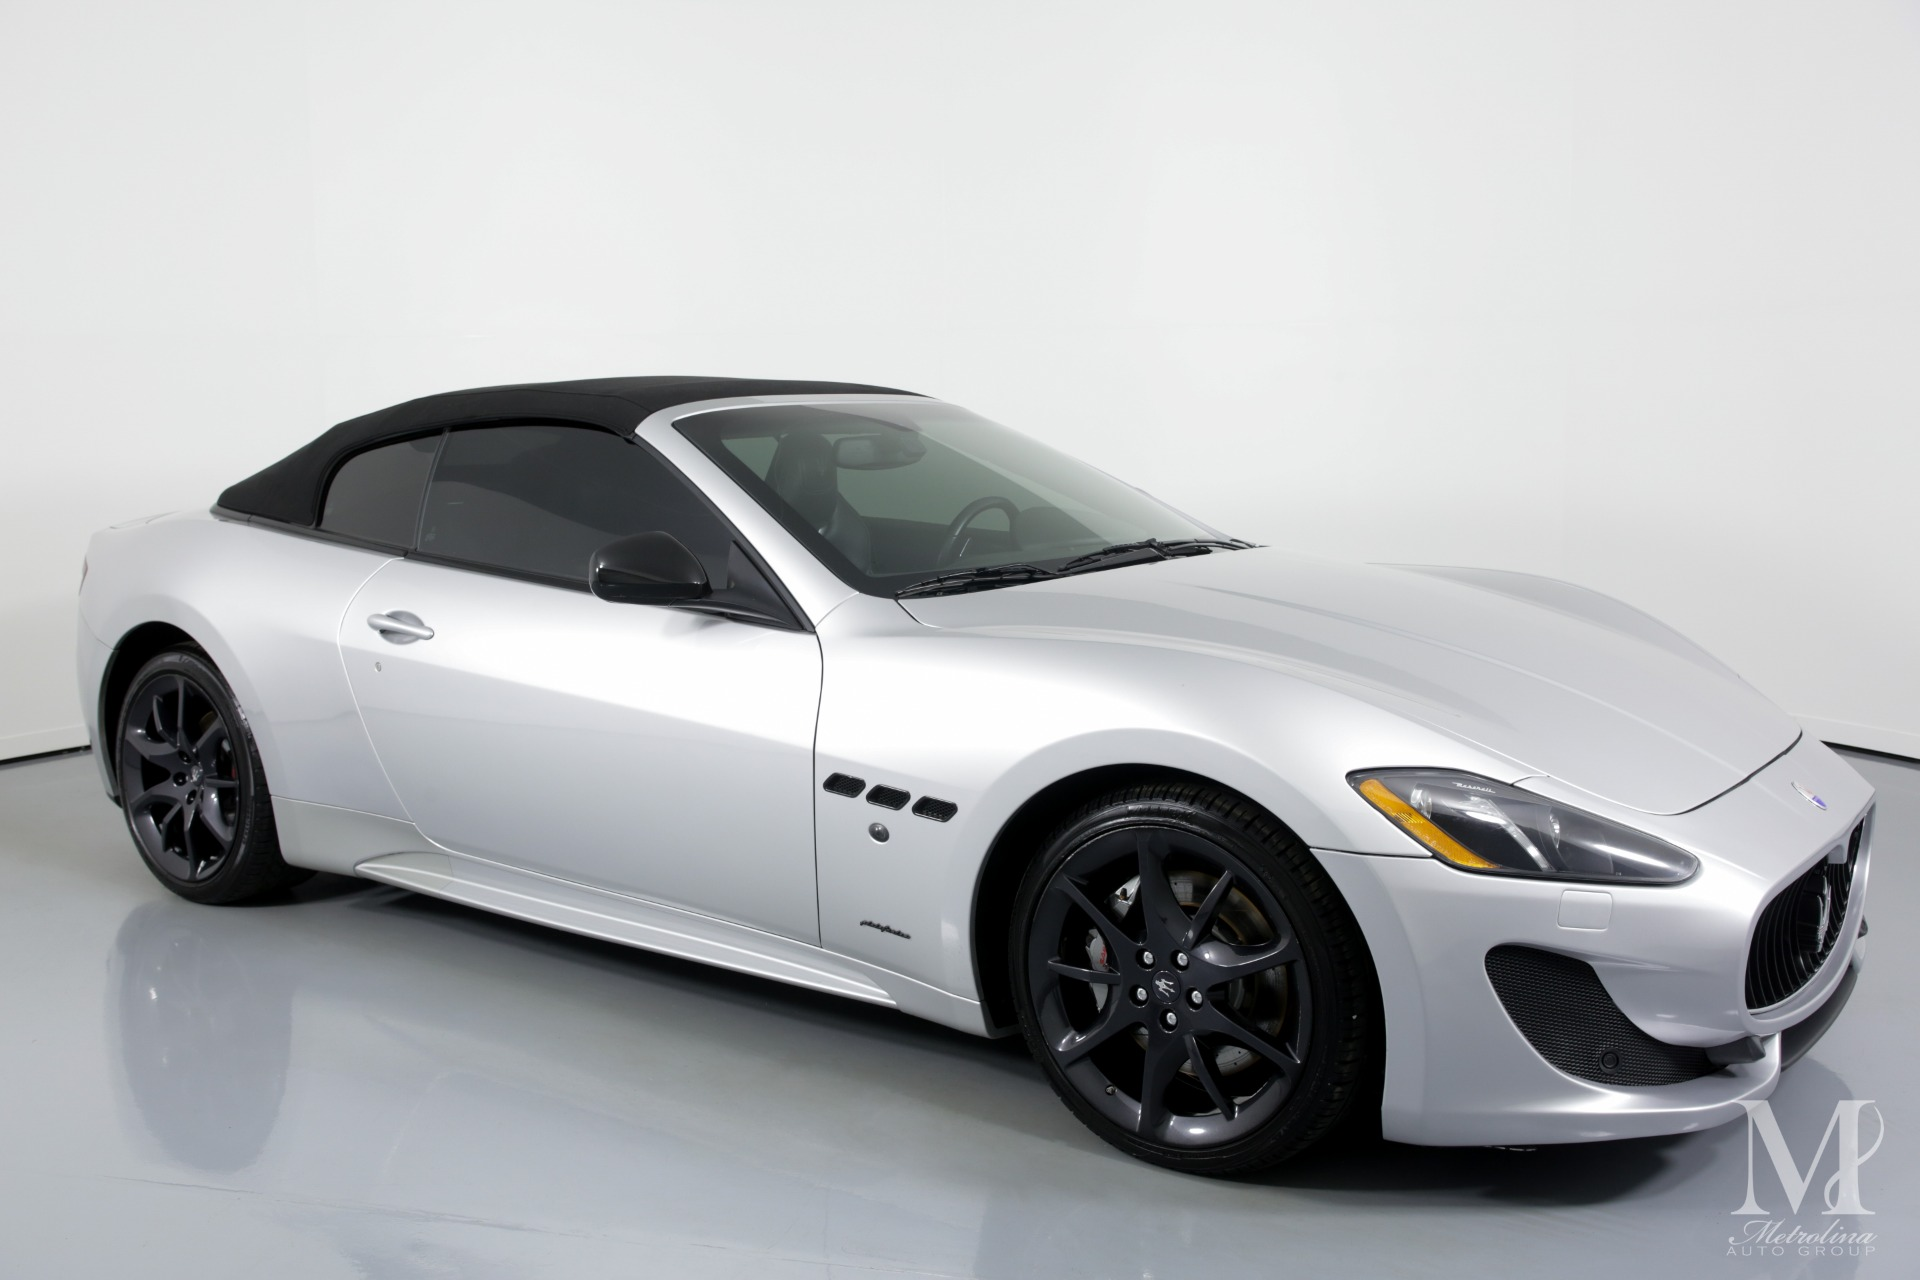 Used 2014 Maserati GranTurismo Sport 2dr Convertible for sale $54,996 at Metrolina Auto Group in Charlotte NC 28217 - 2